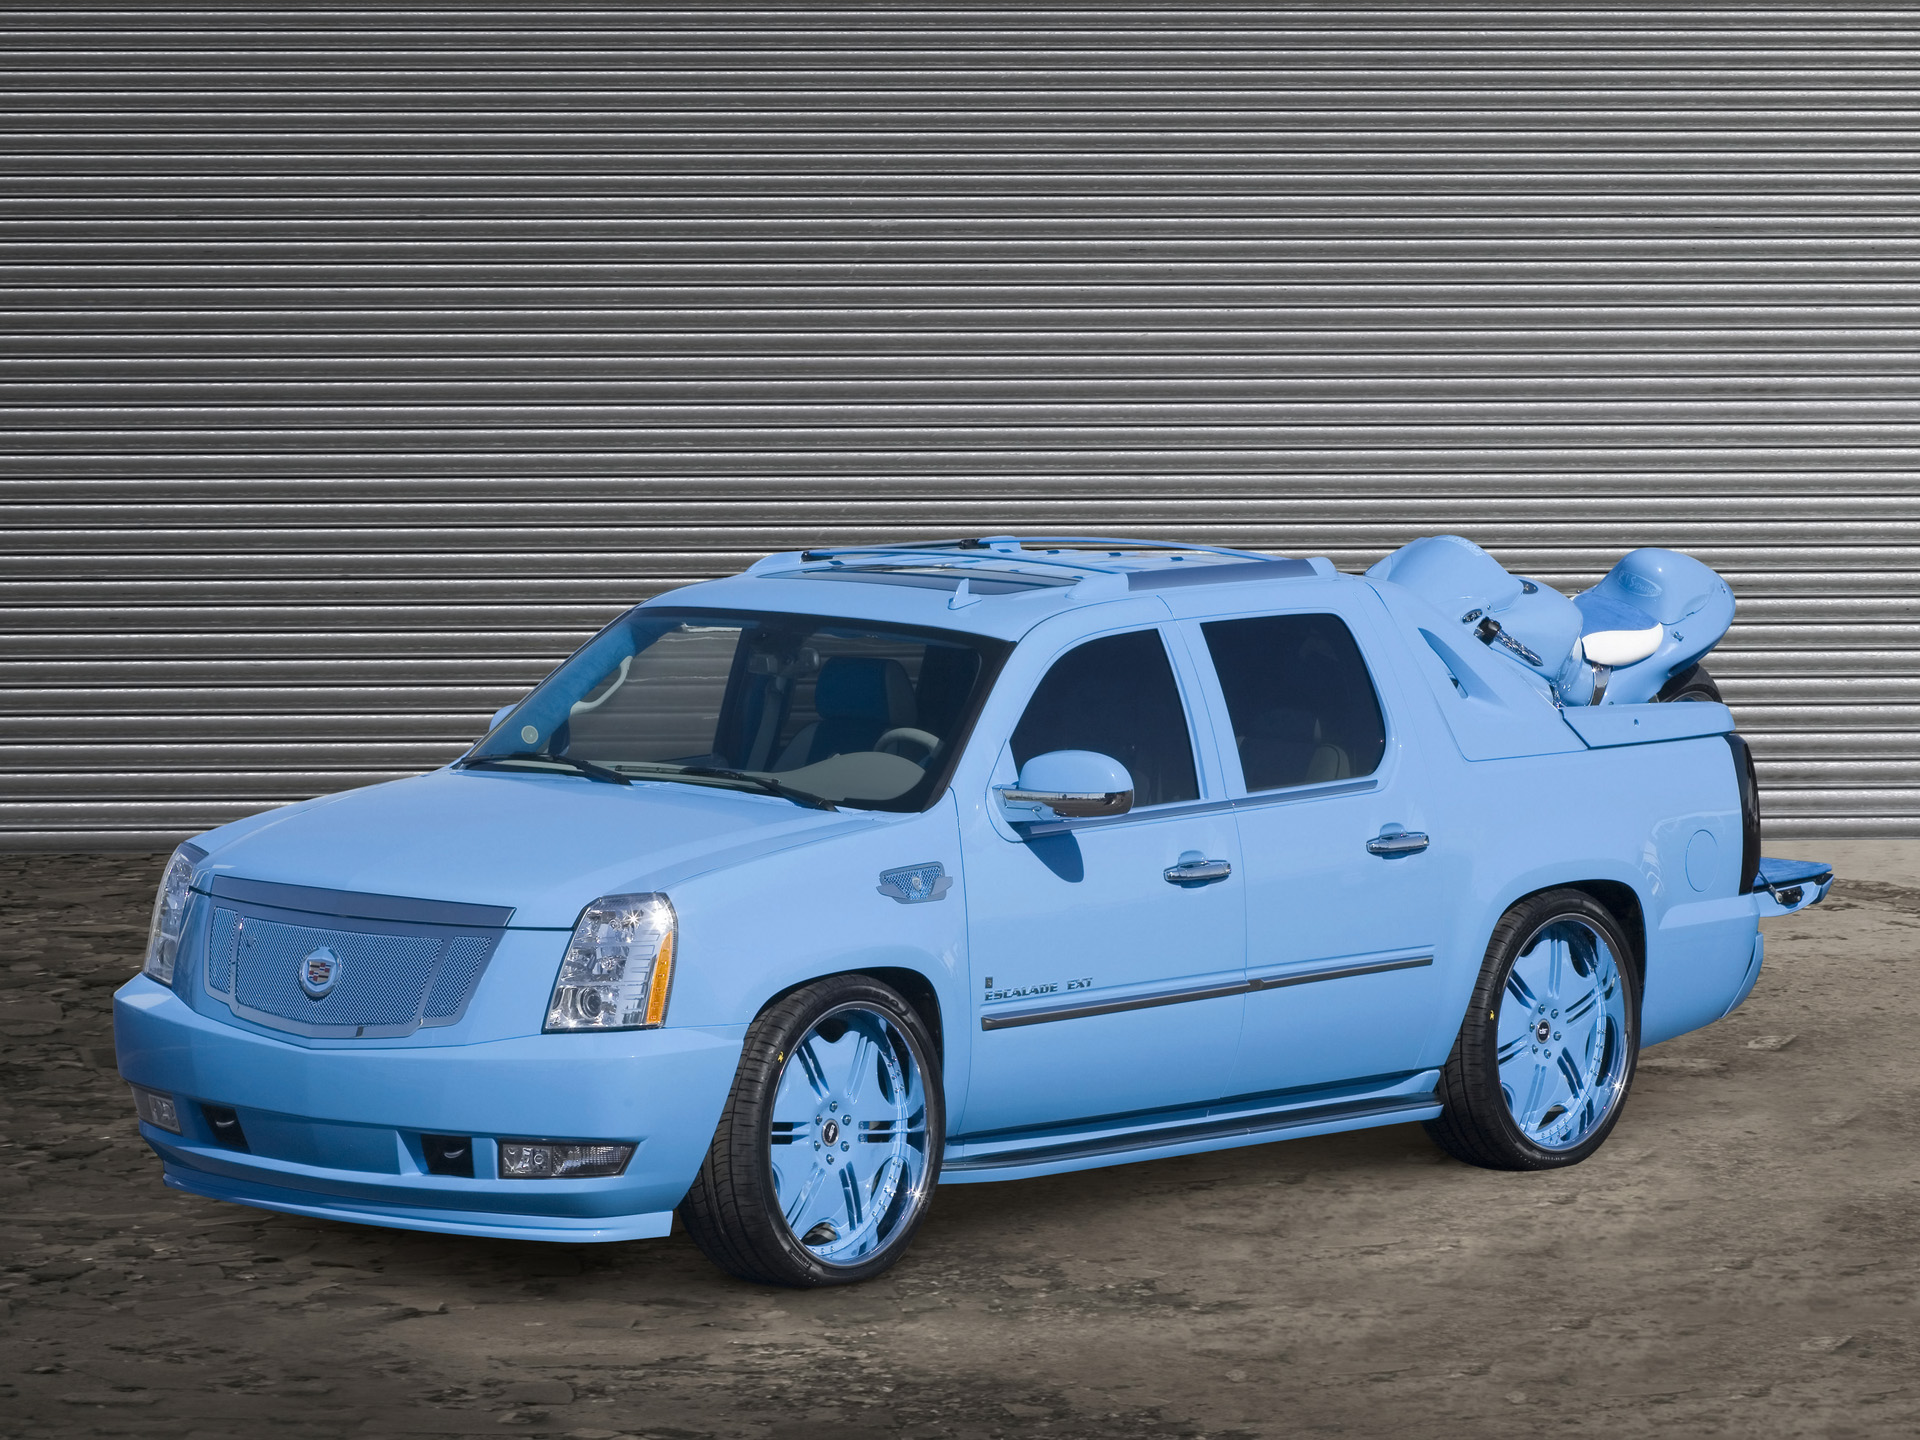 2006 Cadillac Escalade EXT DUB Magazine History, Pictures